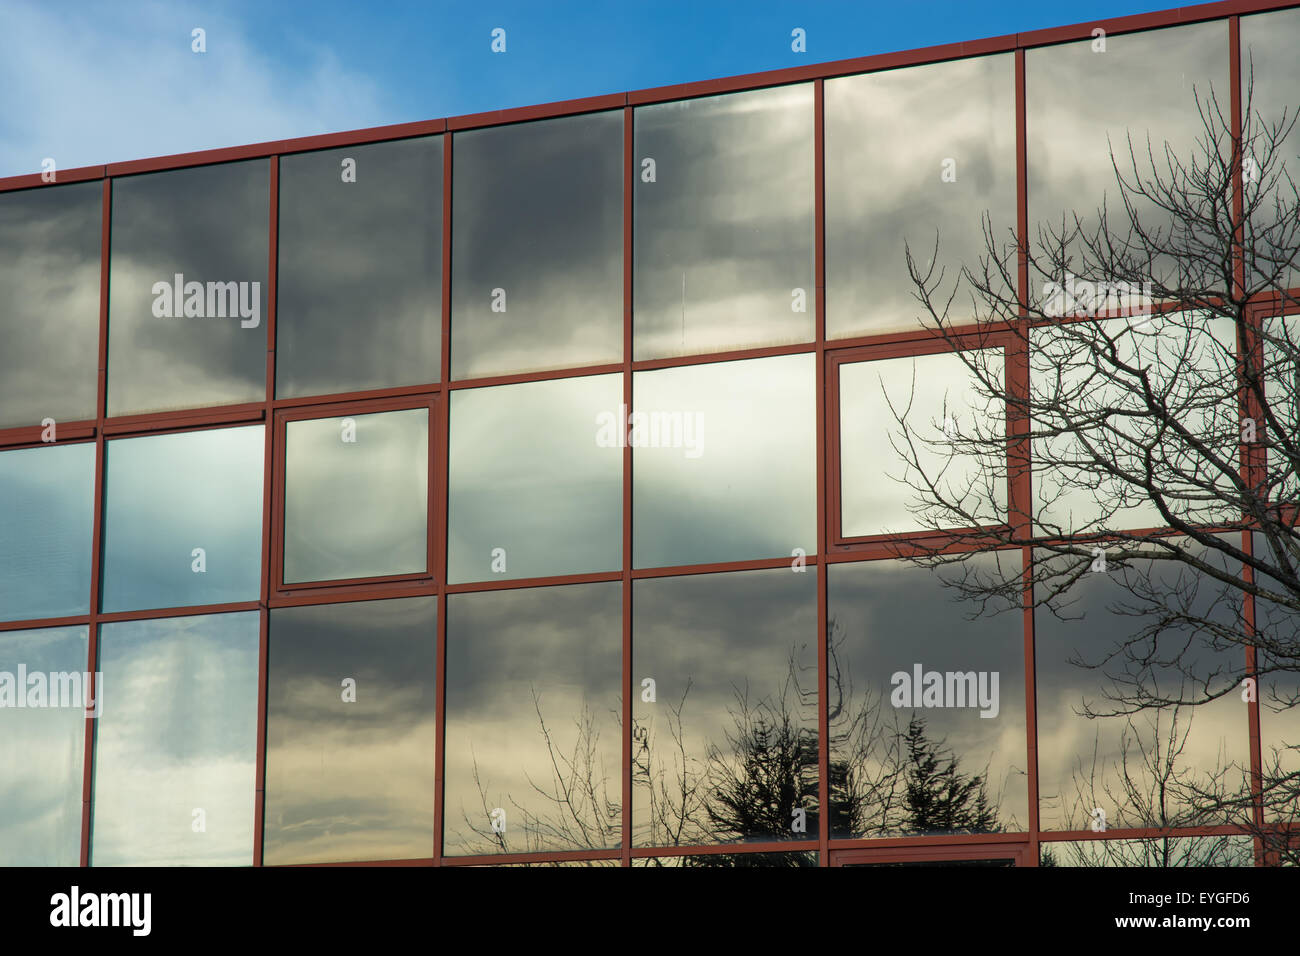 Sky reflected in the glass wall of an office building - Stock Image